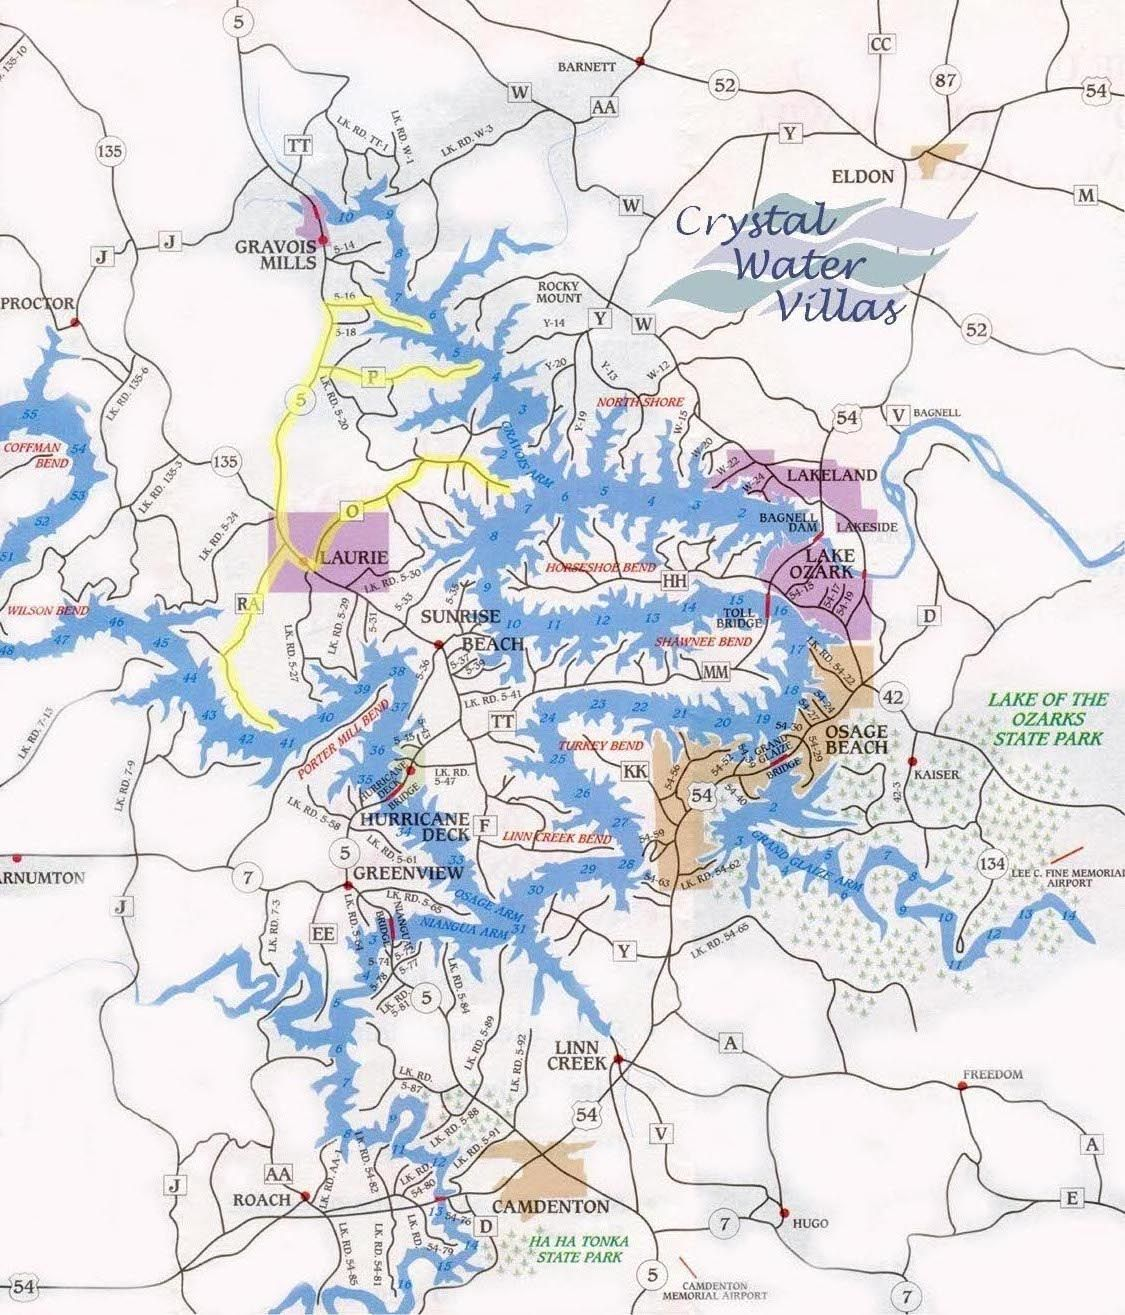 Lake Of The Ozarks Mile Marker Map Image result for map of lake of the ozarks with mile markers